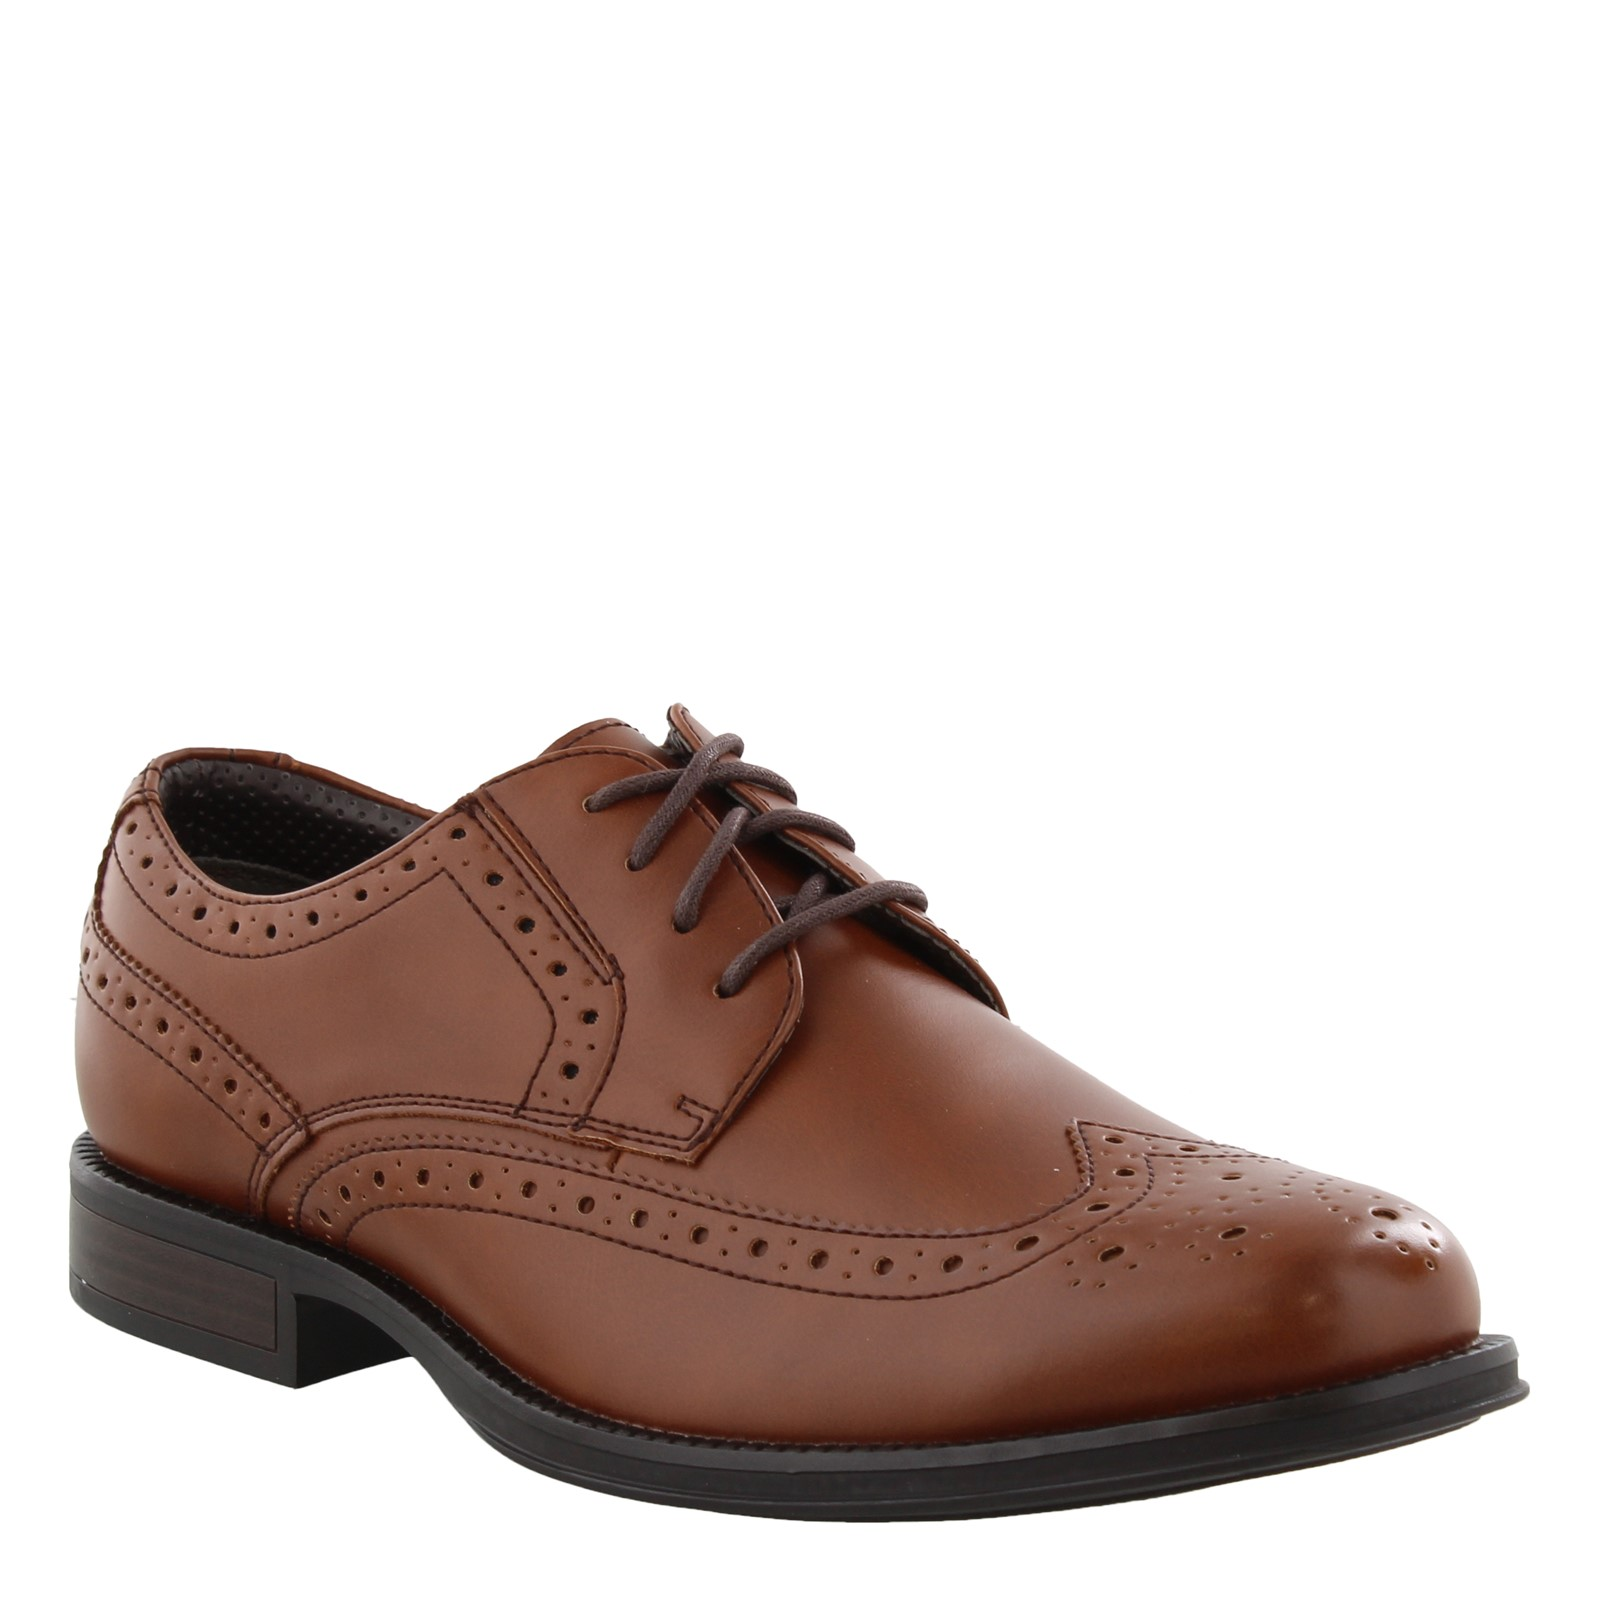 Men's Dockers, Wycliff Wingtip Oxford